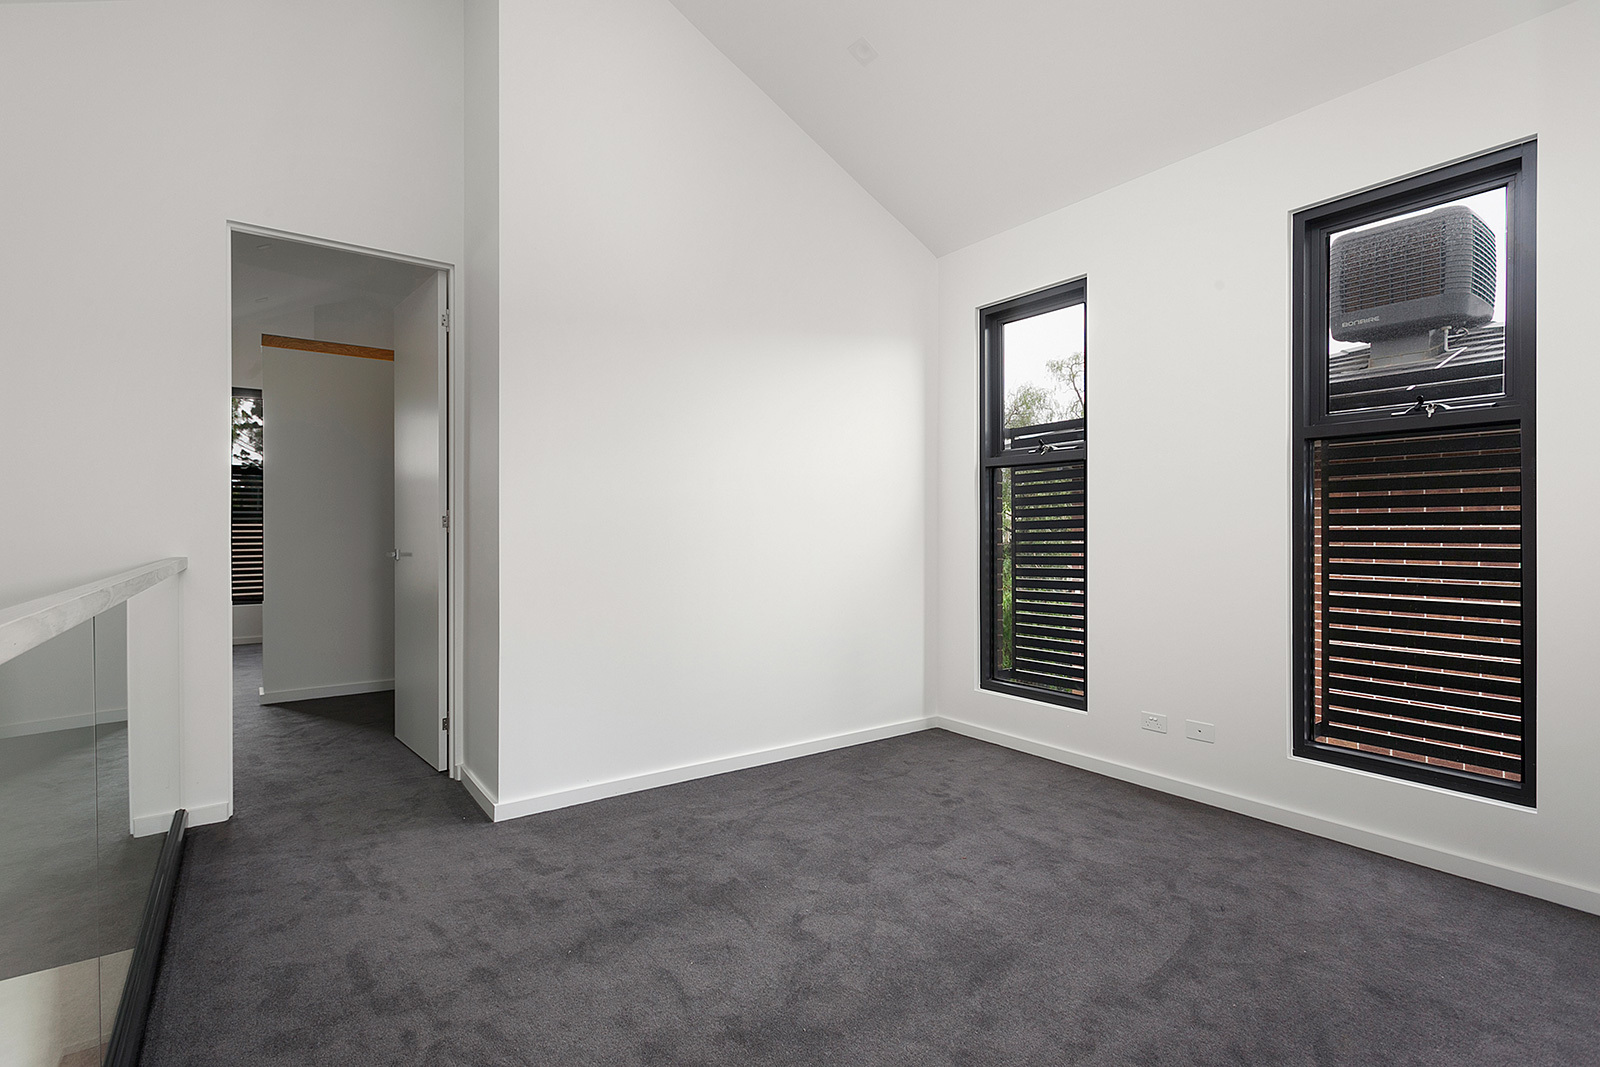 5/456 Barkers Road, Hawthorn East 3123 - Image 5